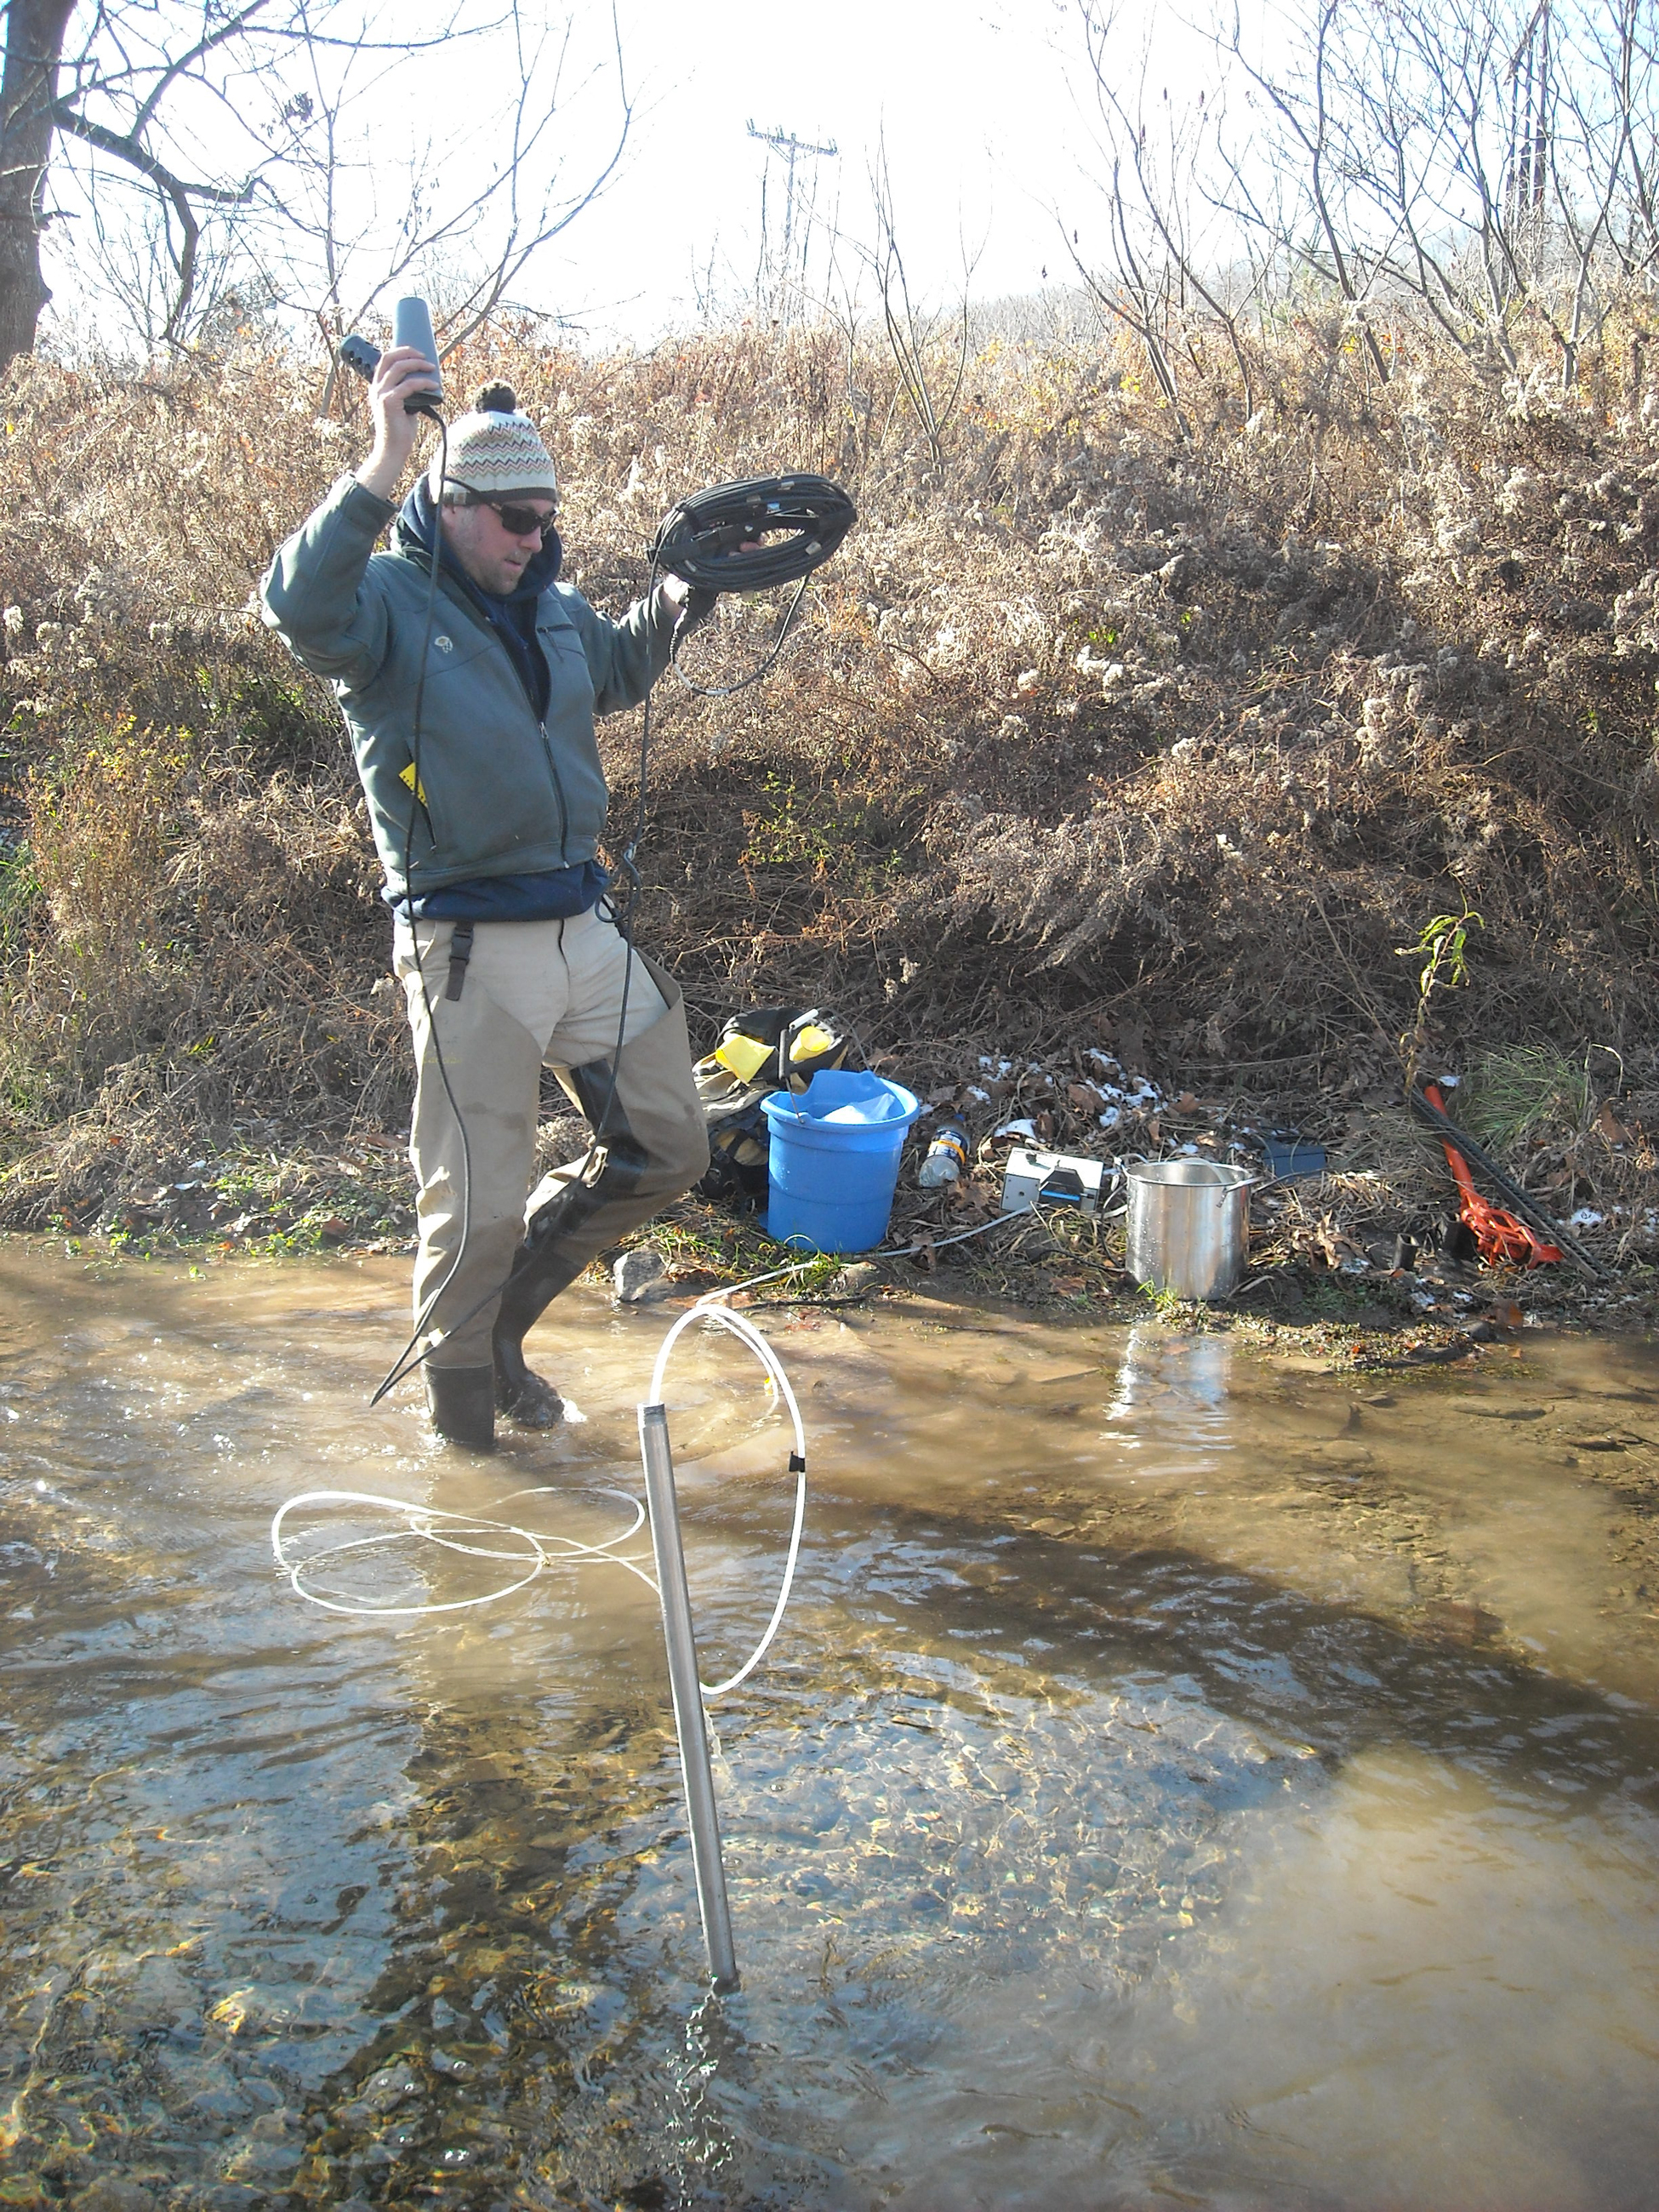 20150407hoMethane Researchers with the U.S. Geological Survey and Penn State are studying streams that run through areas of gas development to detect the migration of gases through aquifers. Scott Hynek, a post-doctoral researcher at Penn State, takes measurements in Nine Partners Creek in northeastern Pennsylvania.